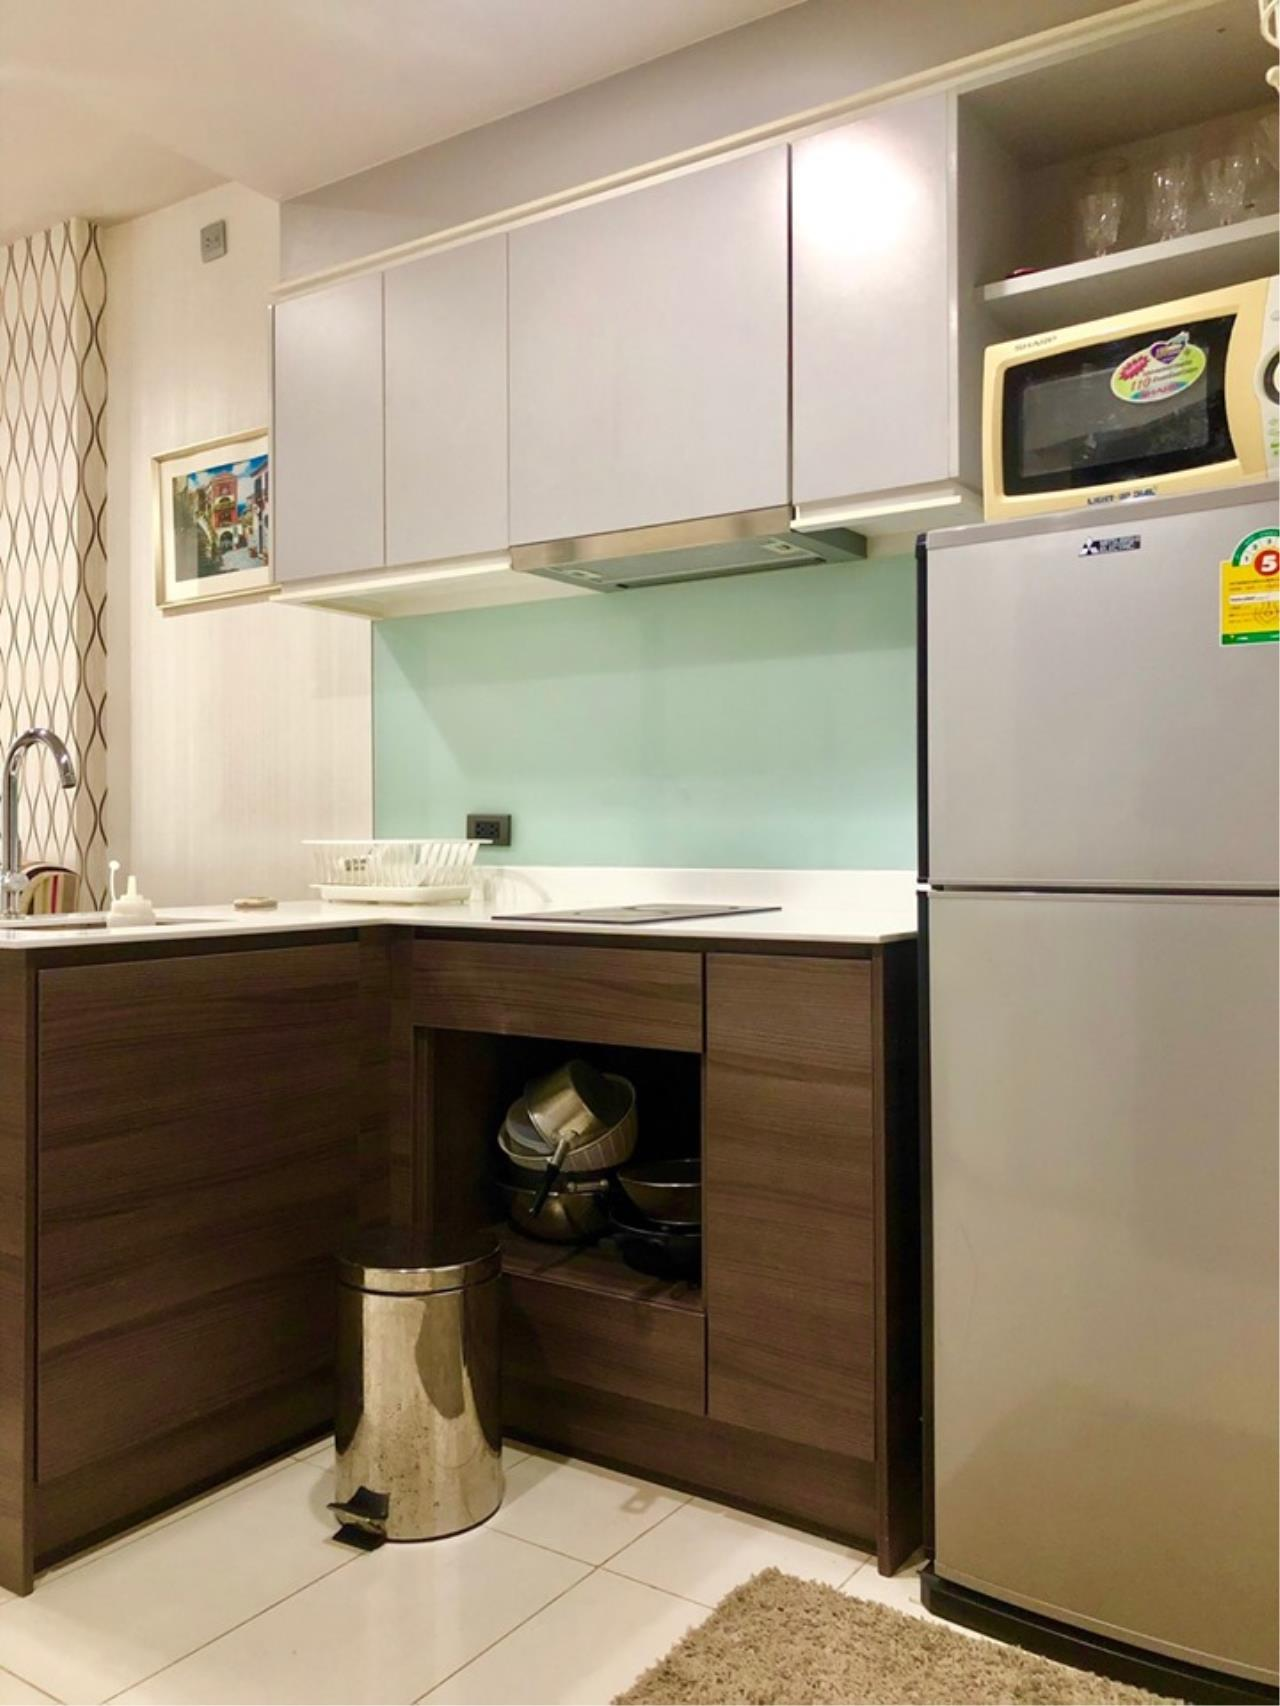 Agent - Prombood Agency's Sale with tenant - 1 Bedroom 35 sq.m. Ceil by Sansiri near Ekkamai BTS Station 17